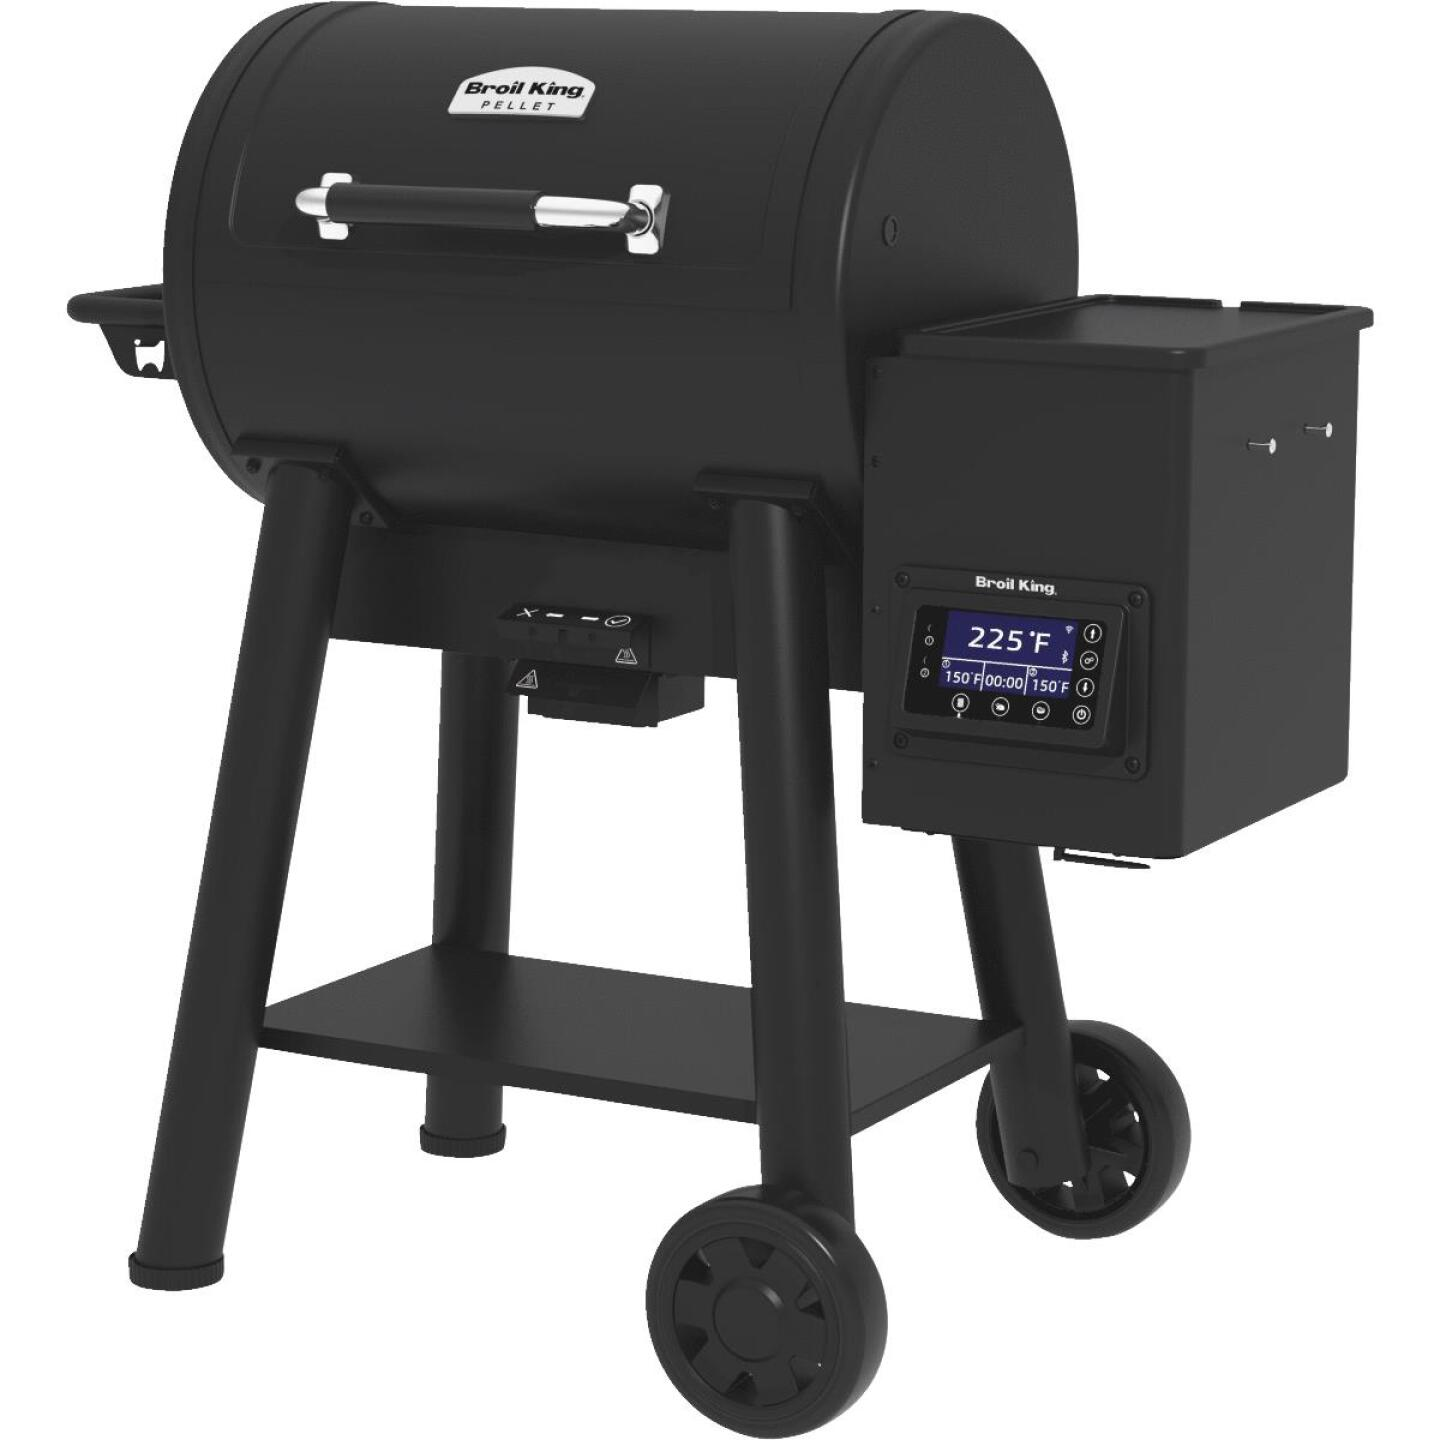 Broil King Baron Pellet 400 Black 635 Sq. In. Grill Image 5